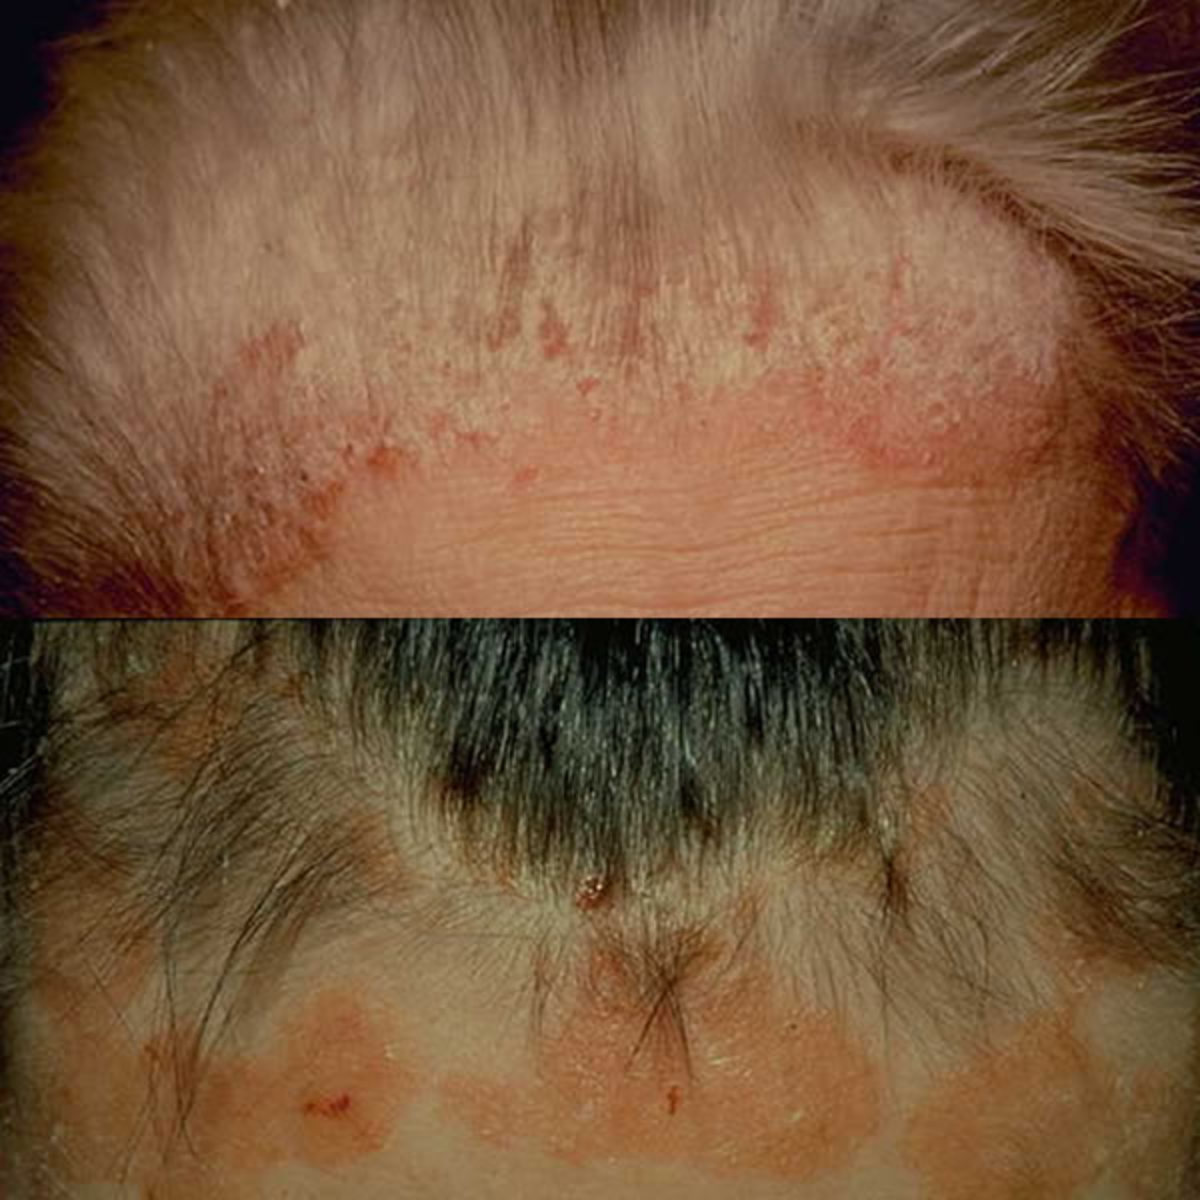 Natural Scalp Psoriasis Treatment With Tea Tree Oil and Olive Oil